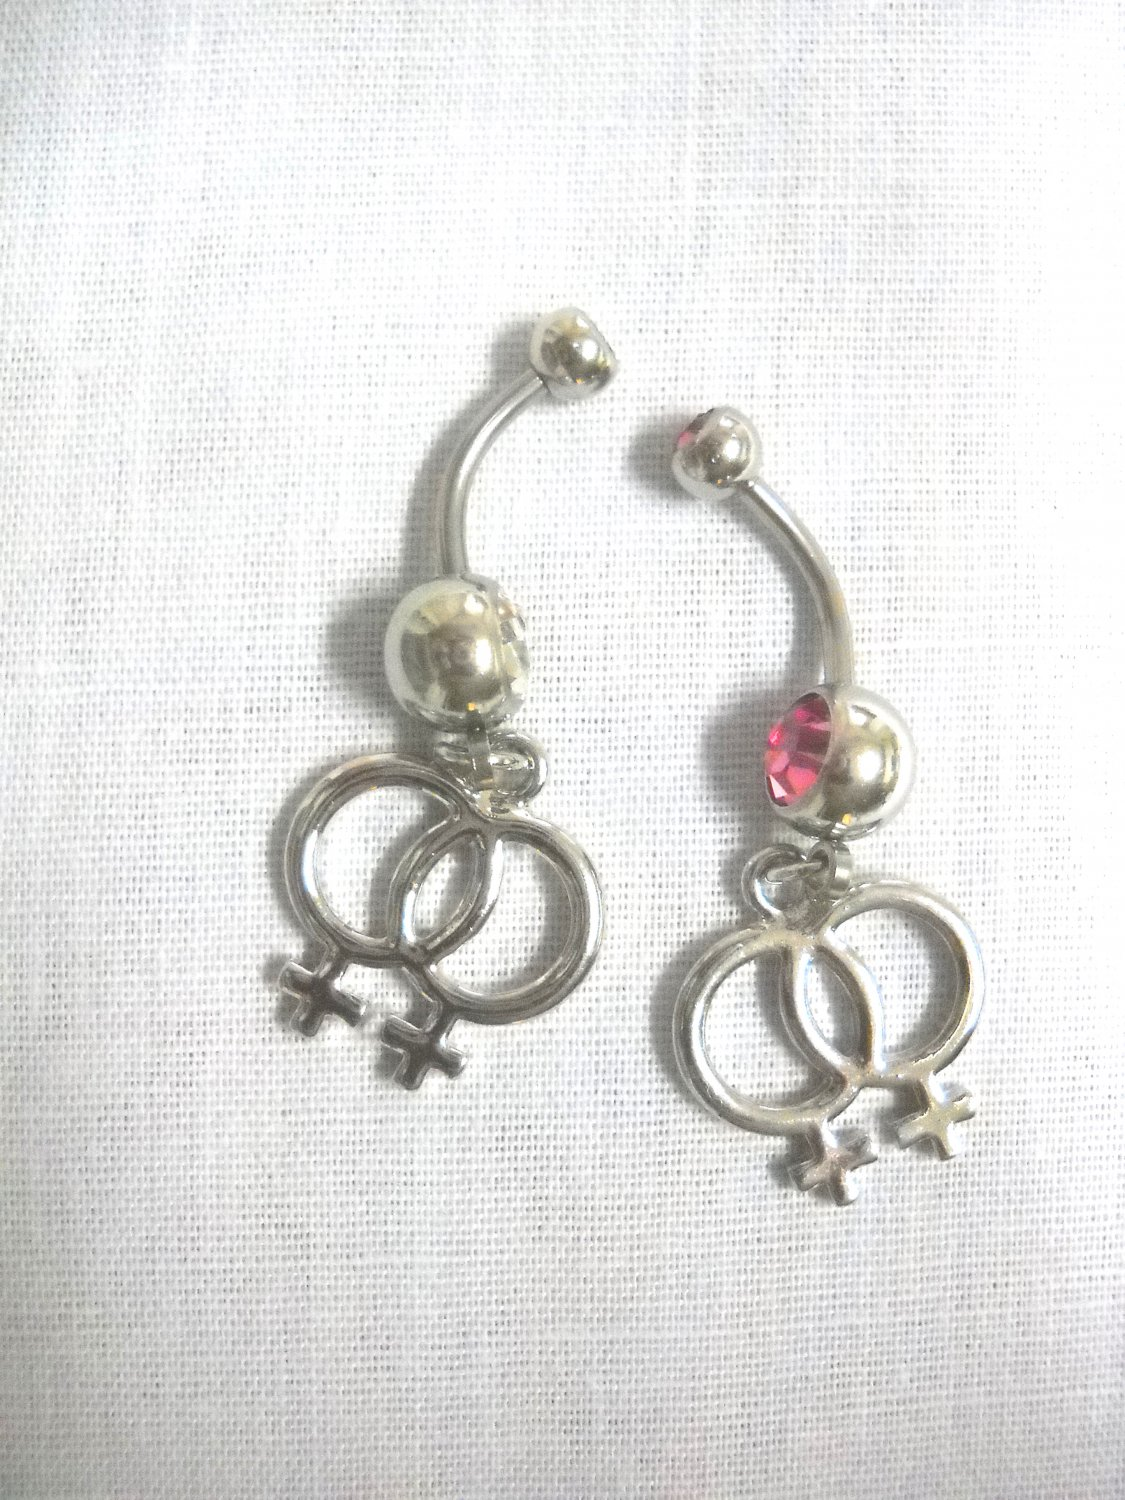 2 PIECE LESBIAN PRIDE / GIRL GIRL SYMBOL CHARMS ON CLEAR & PINK CZ 14g BELLY RINGS / BELLY BARS